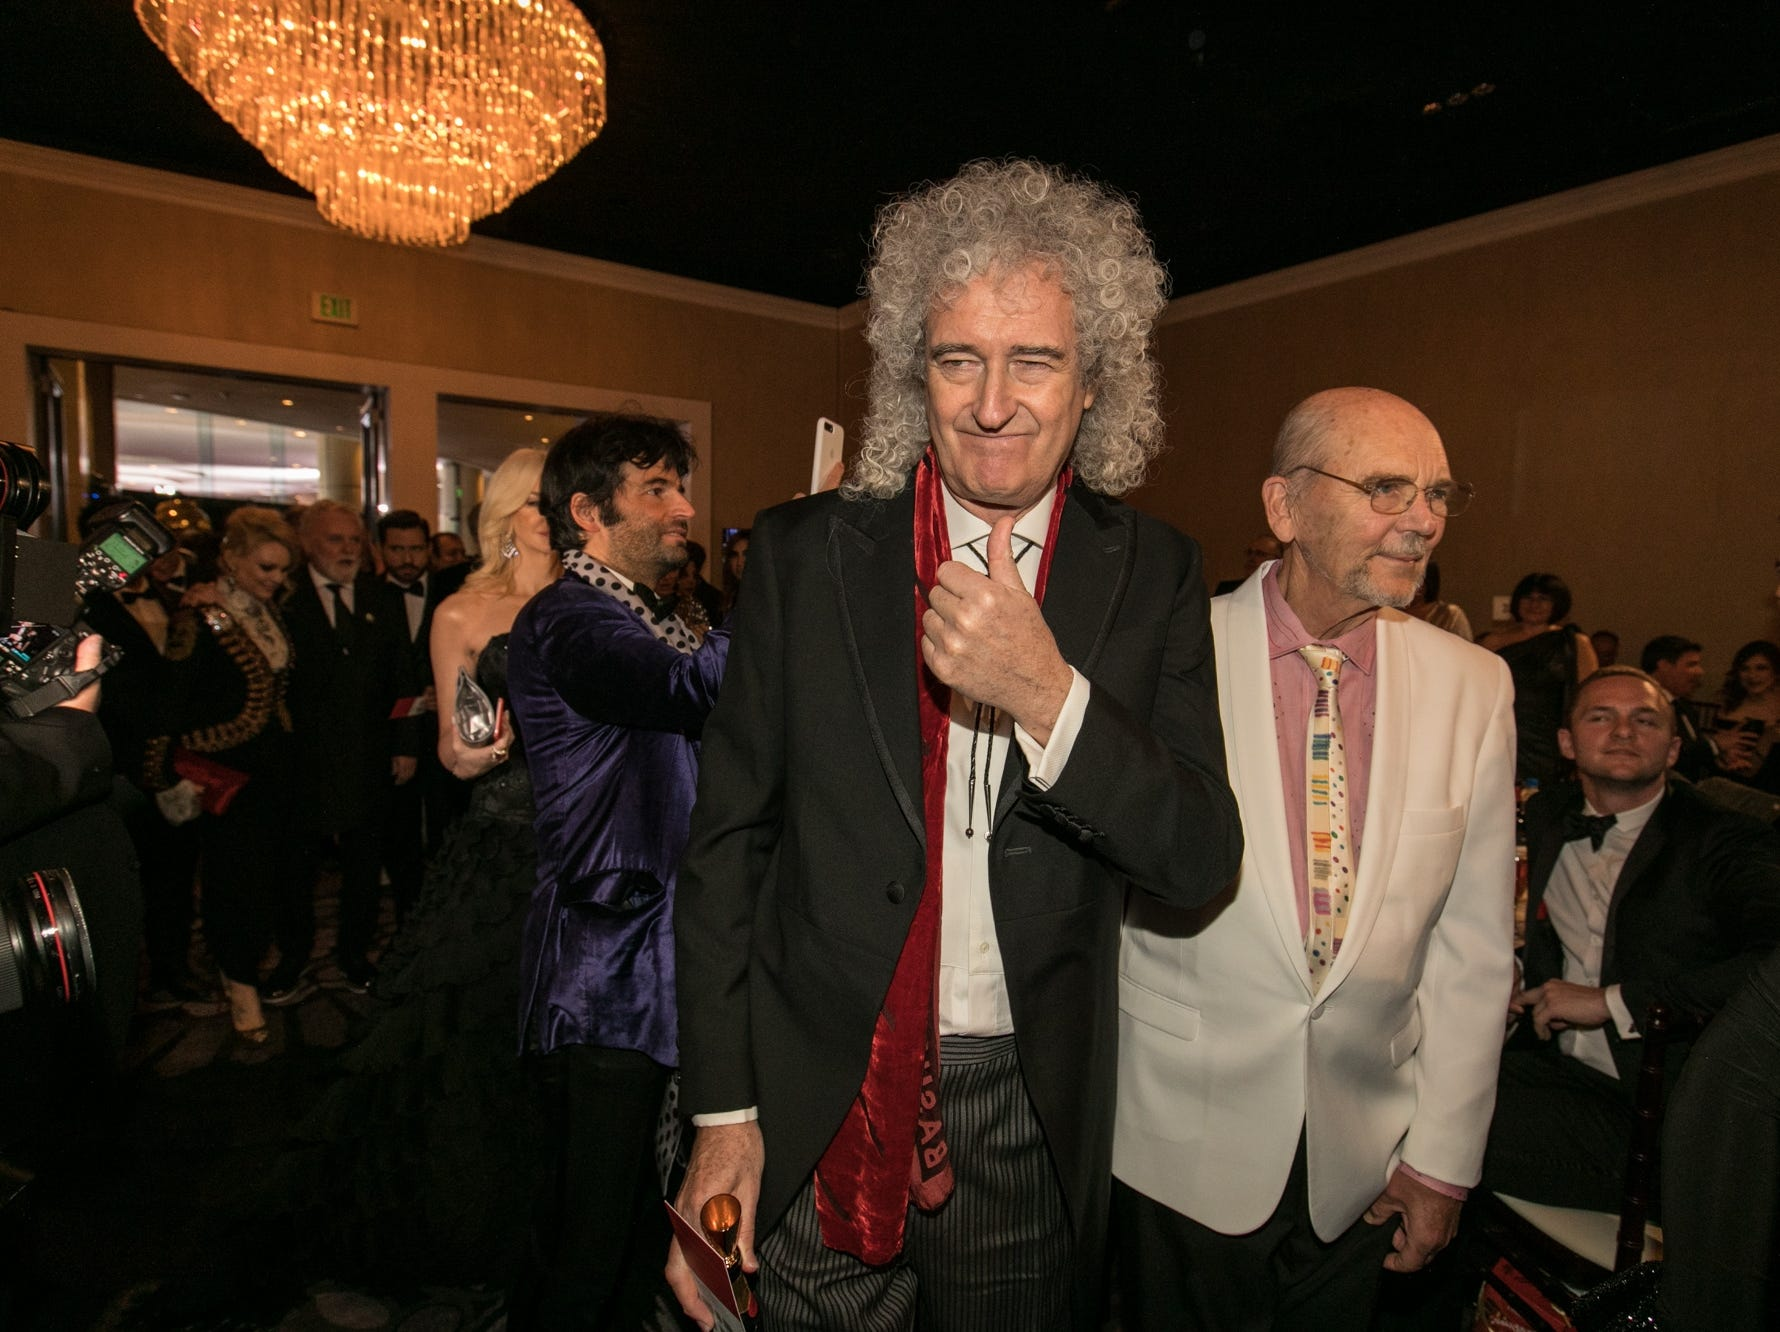 Jan 6, 2019; Beverly Hills, CA, USA; Queen guitarist Brian May arrives during the 76th Golden Globe Awards in the International Ballroom at the Beverly Hilton. Mandatory Credit: David Sprague-USA TODAY (Via OlyDrop)